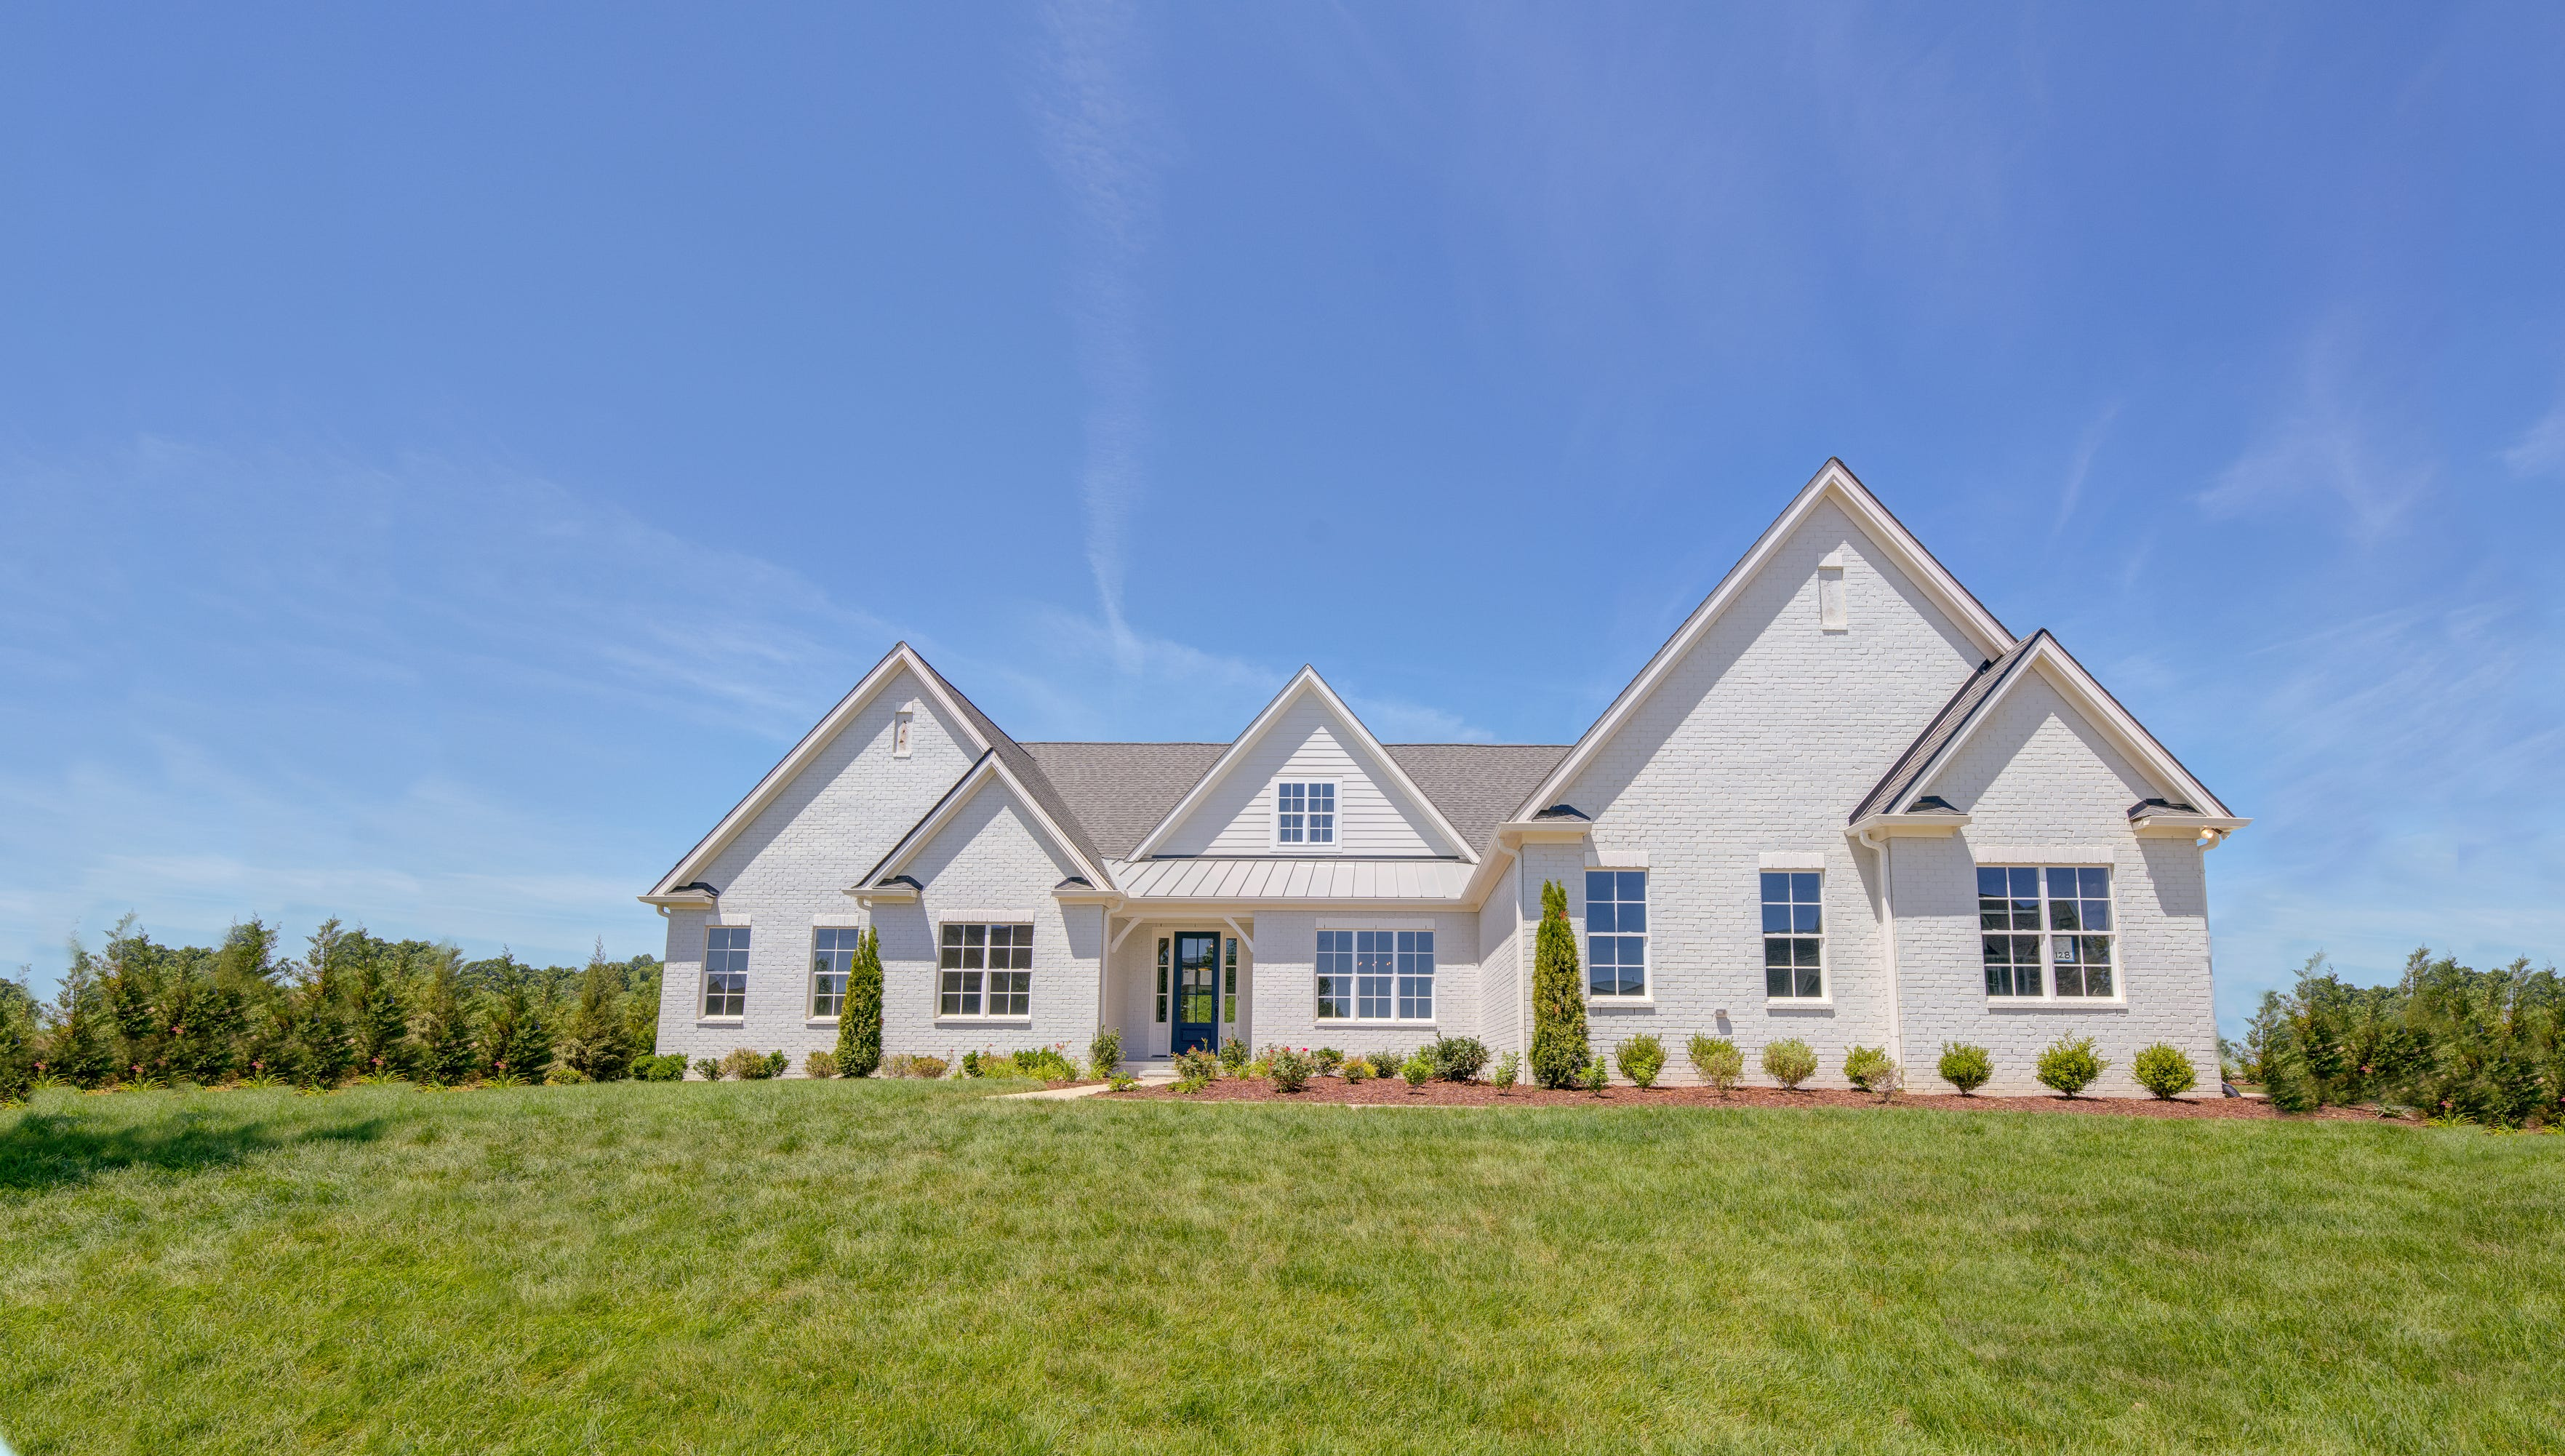 This home for sale in McDaniel Farms is the result of the builder, Signature Homes, listening to requests of customers wanting a one-story floor plan.